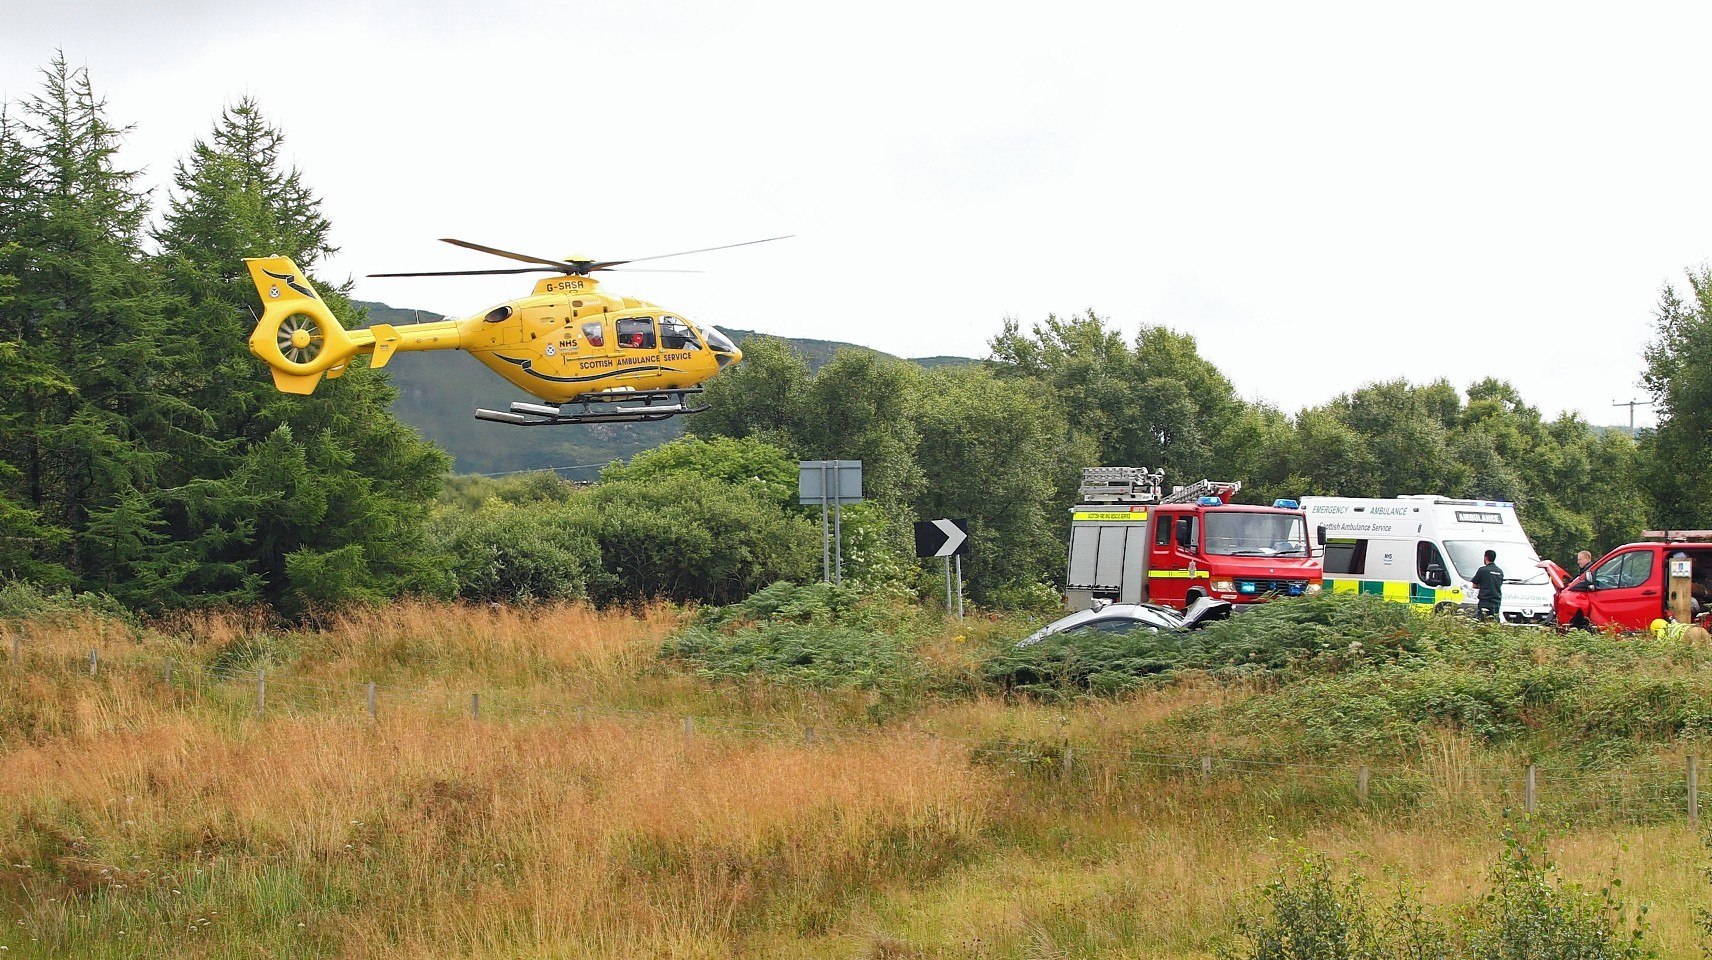 The man is airlifted to hospital from the scene of the accident on the A816. Picture by Kevin McGlynn